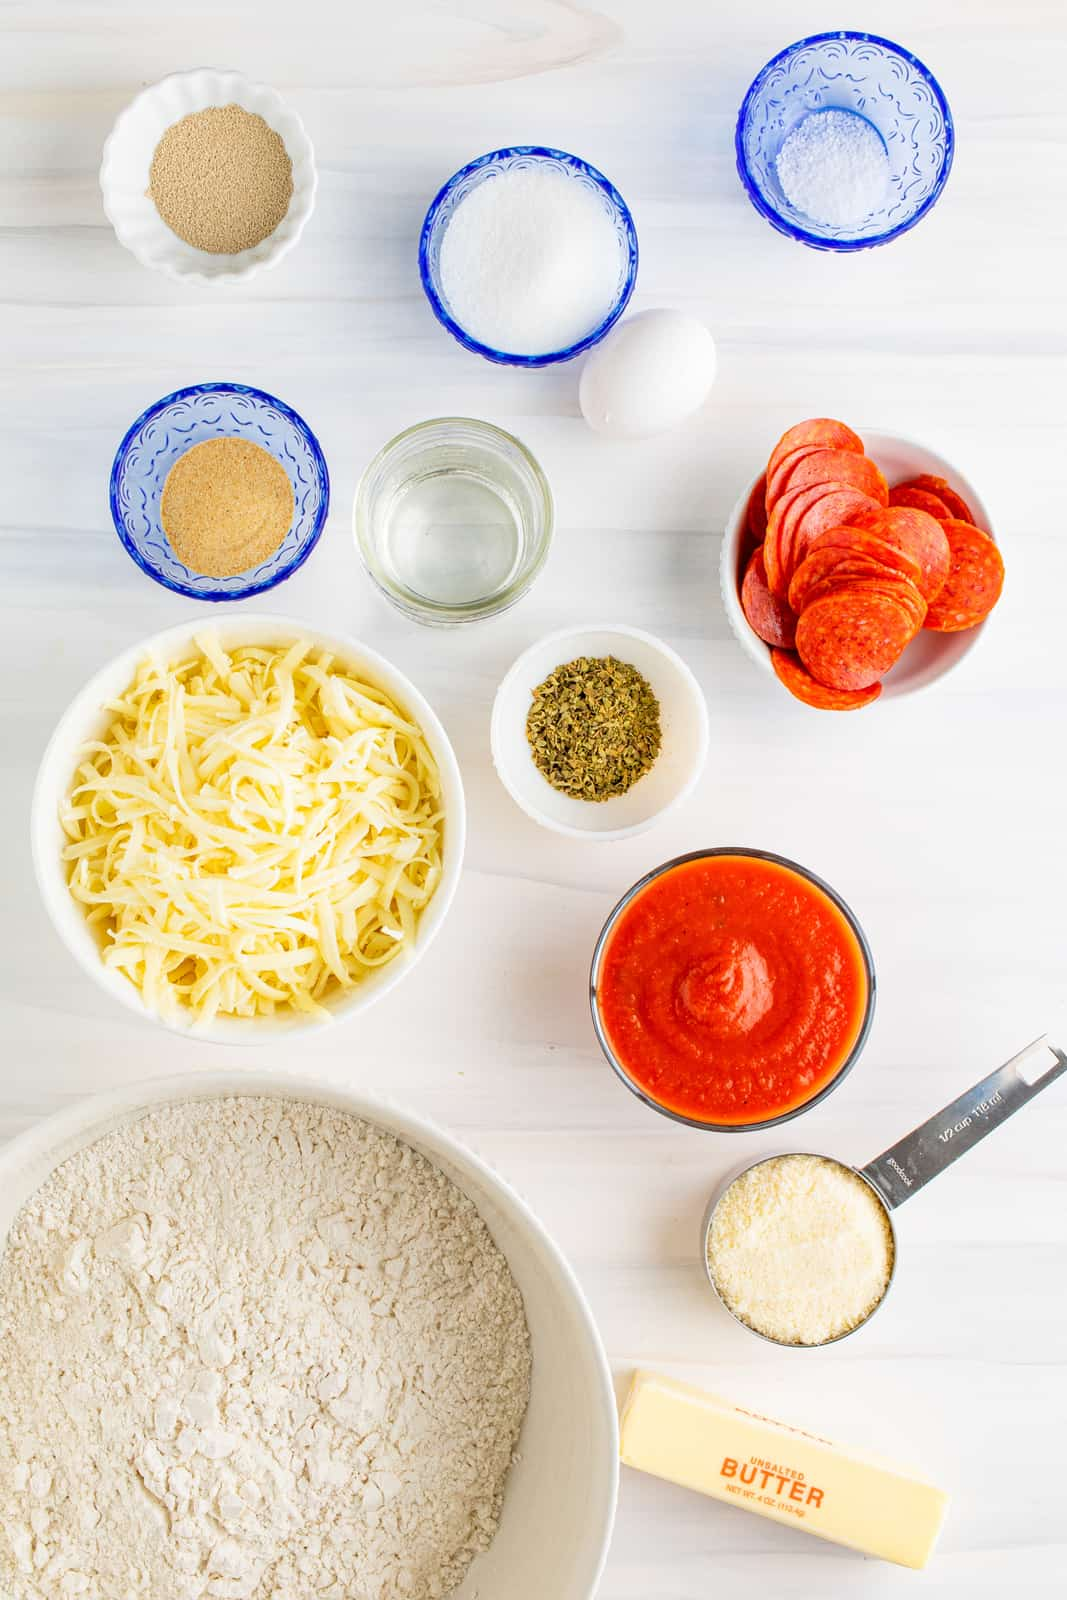 Ingredients needed to make Pepperoni Pizza Rolls